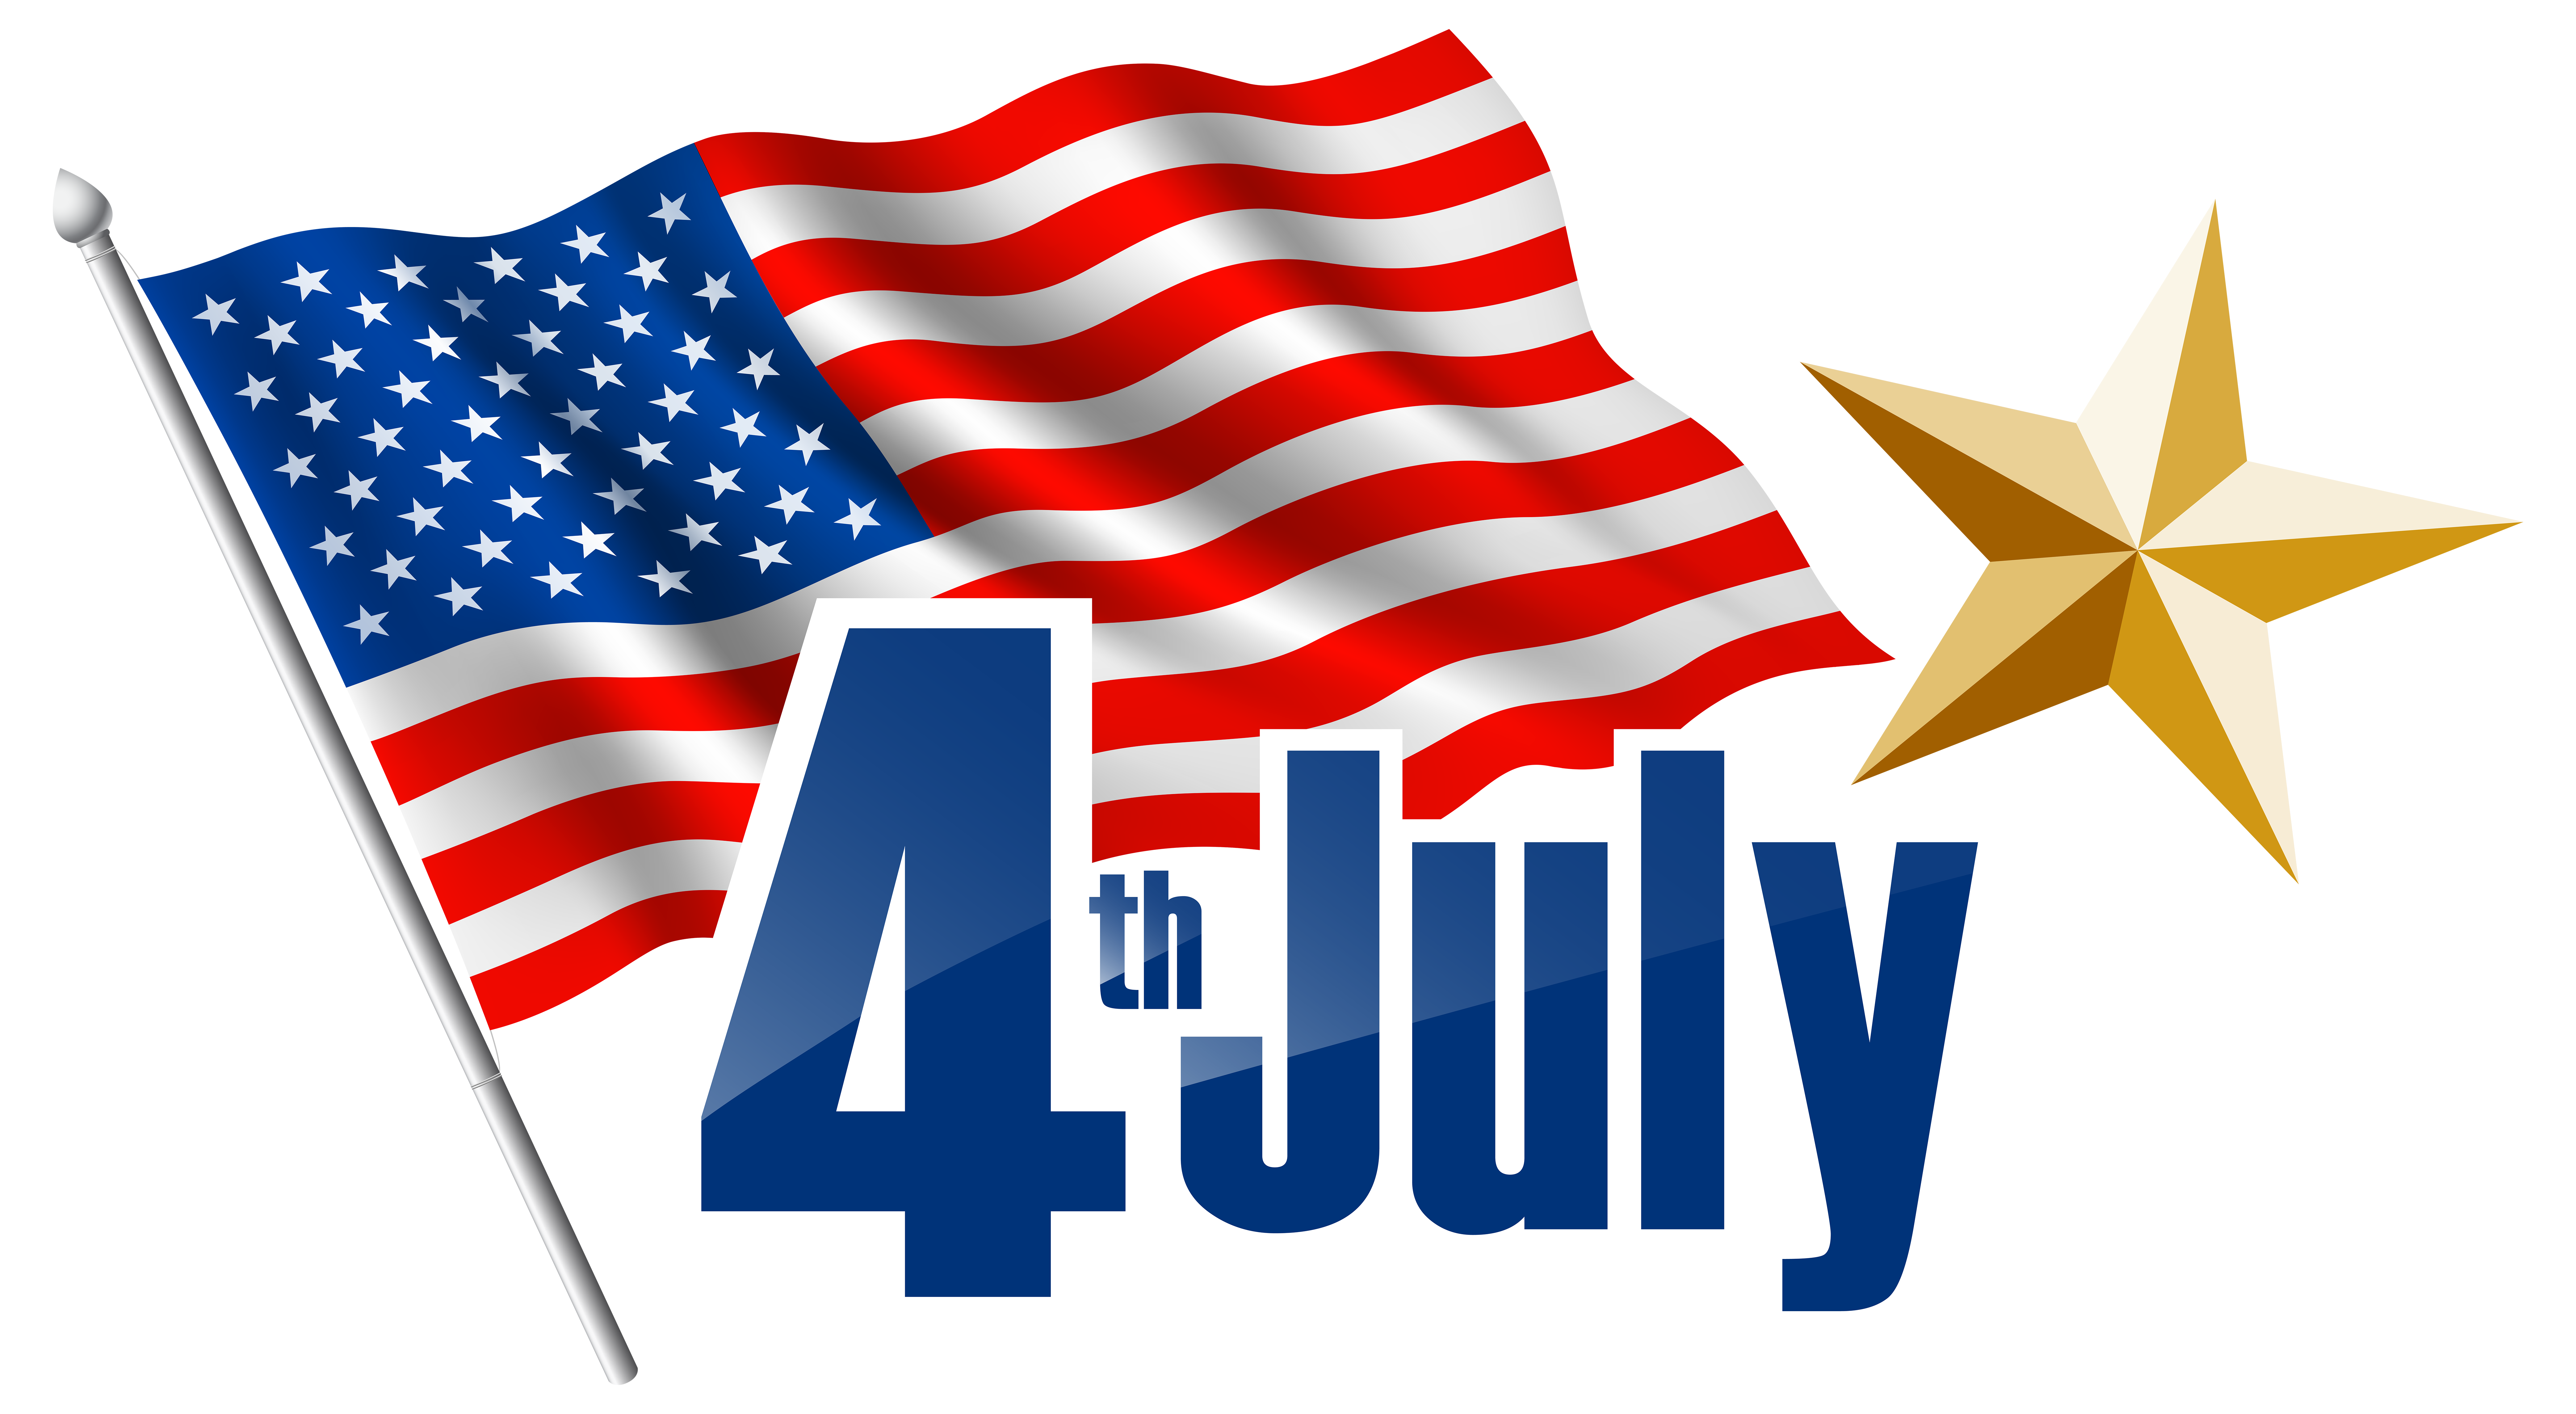 Independence Day Scalable Vector Graphics Icon Clip art.